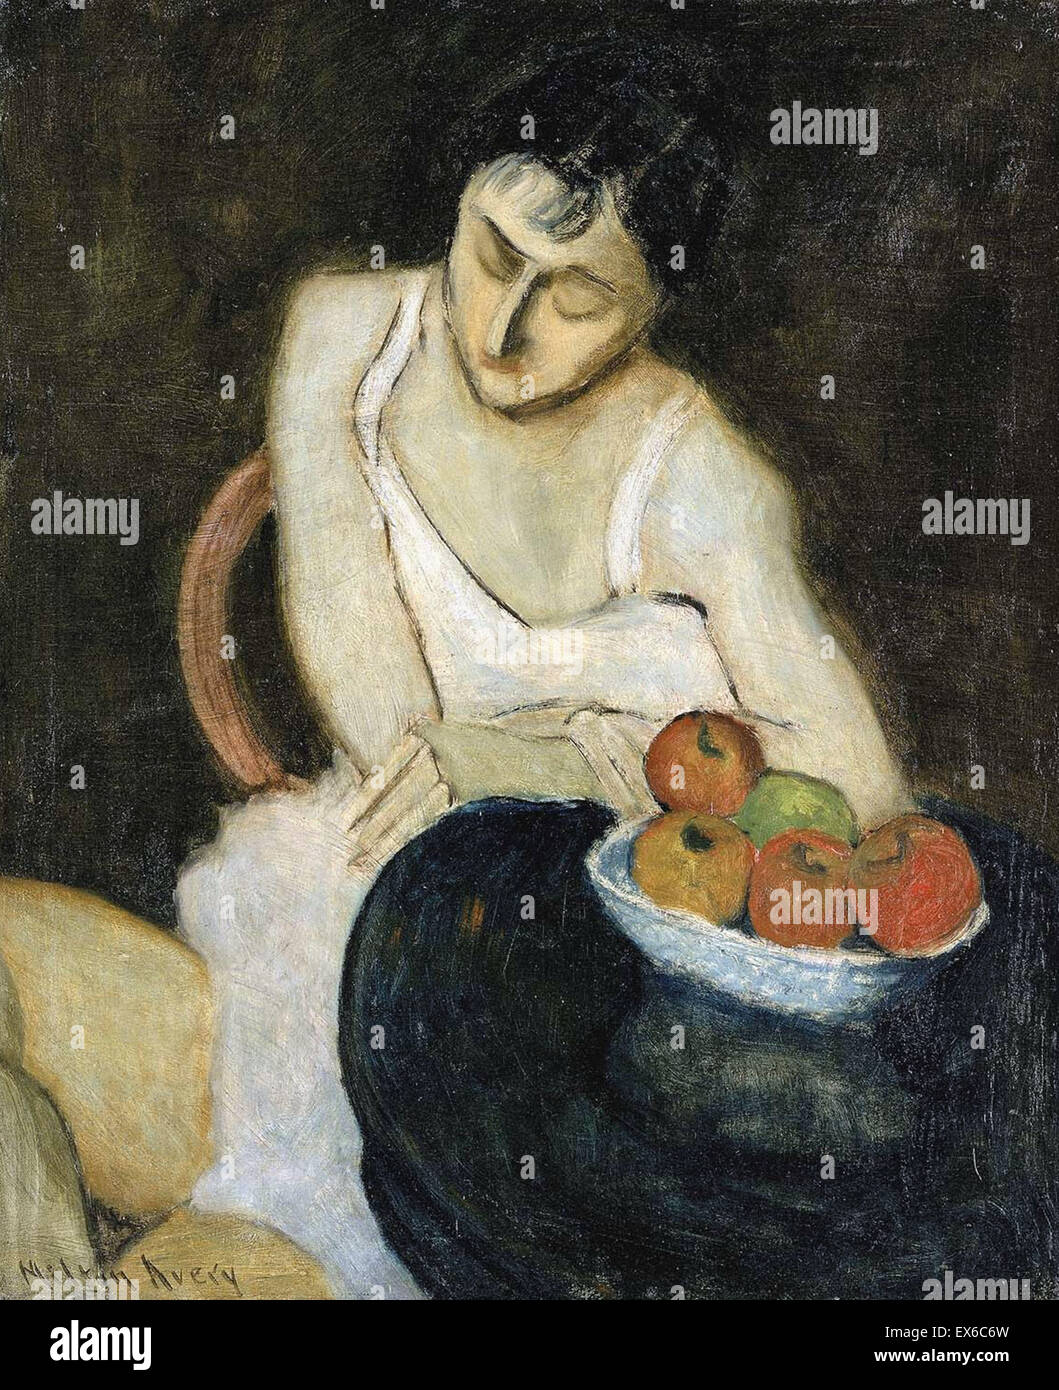 Milton Avery  Sally Avery with Still Life - Stock Image